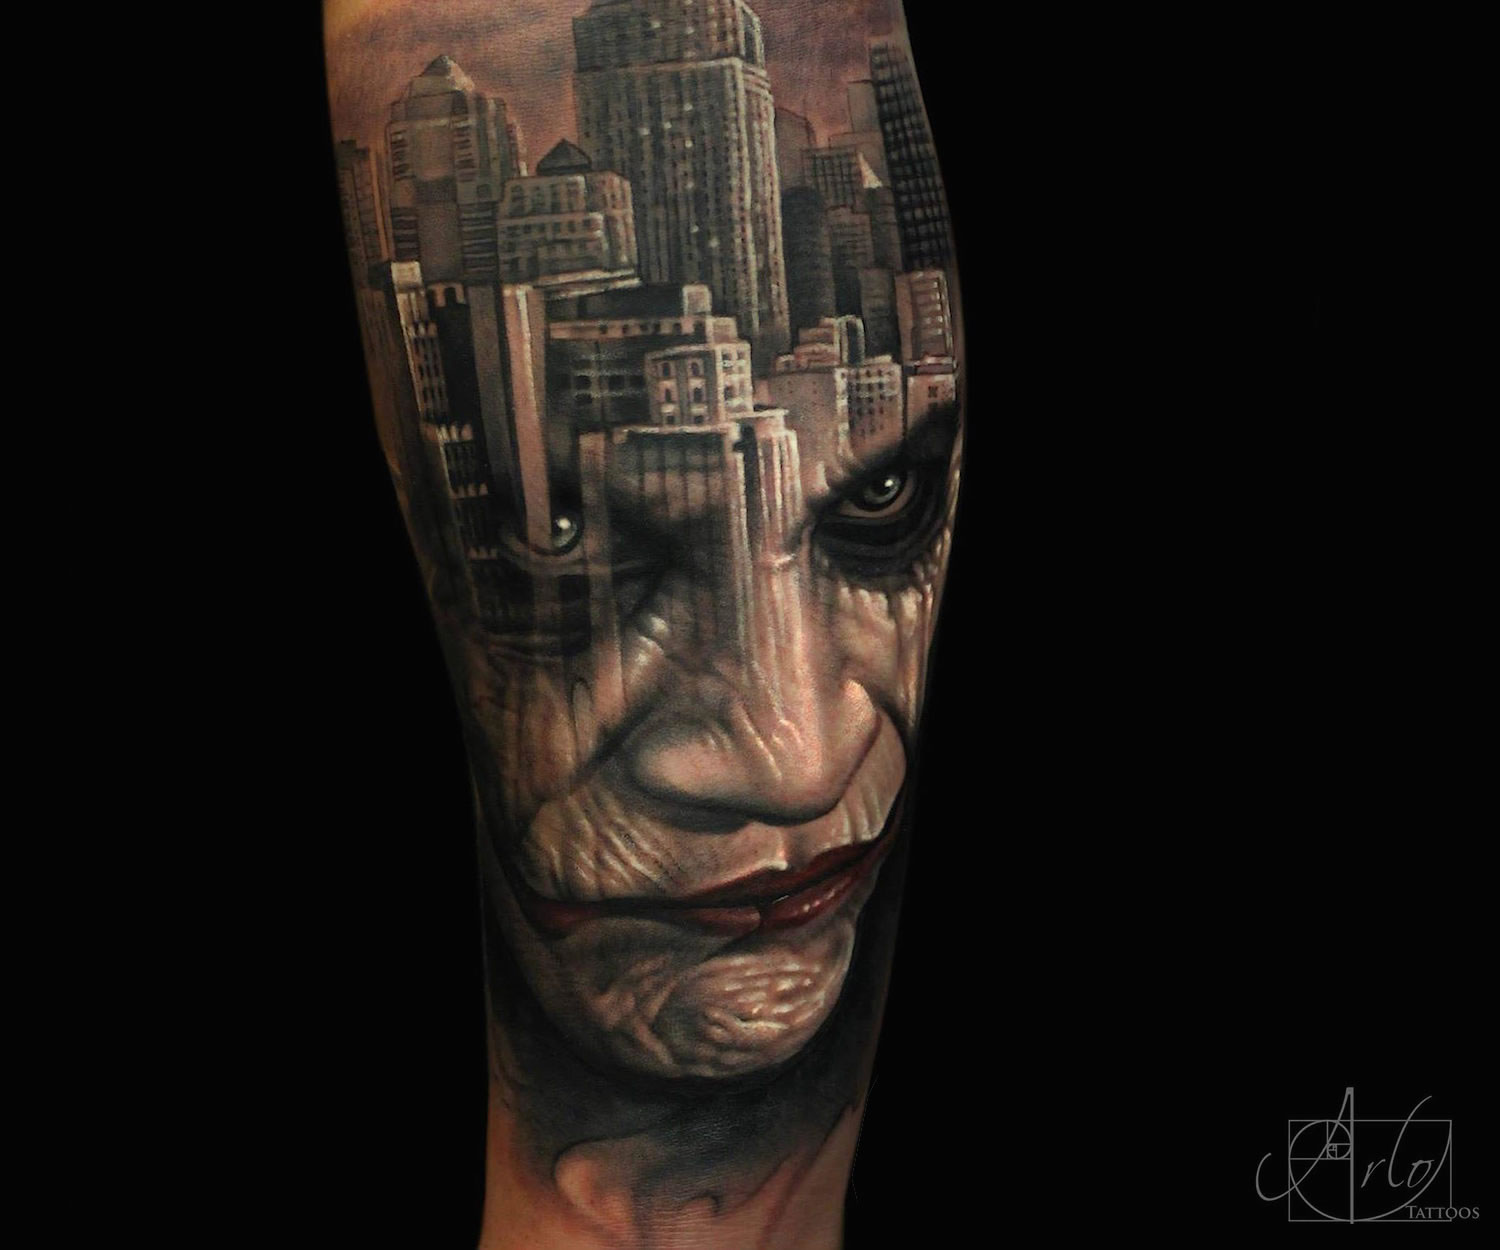 Arlo double exposure joker tattoo